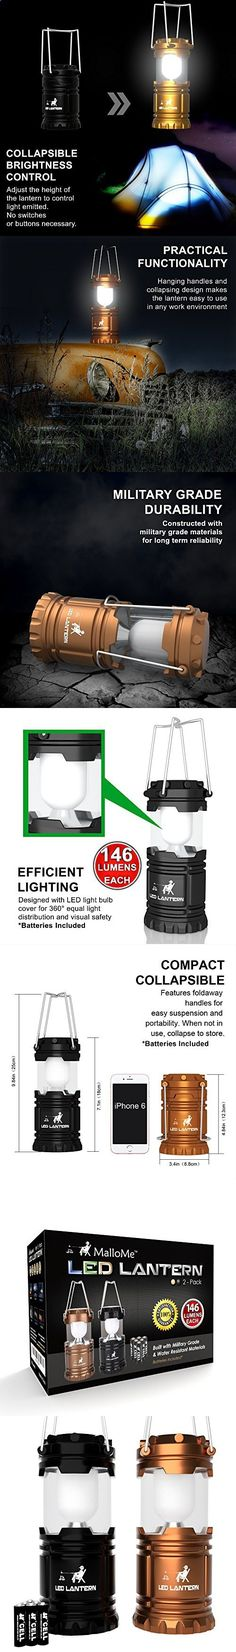 MalloMe LED Camping Lantern Flashlights - Backpacking  Camping Equipment Lights - Best Gift Ideas (6 AA Batteries Included), Black and Gold